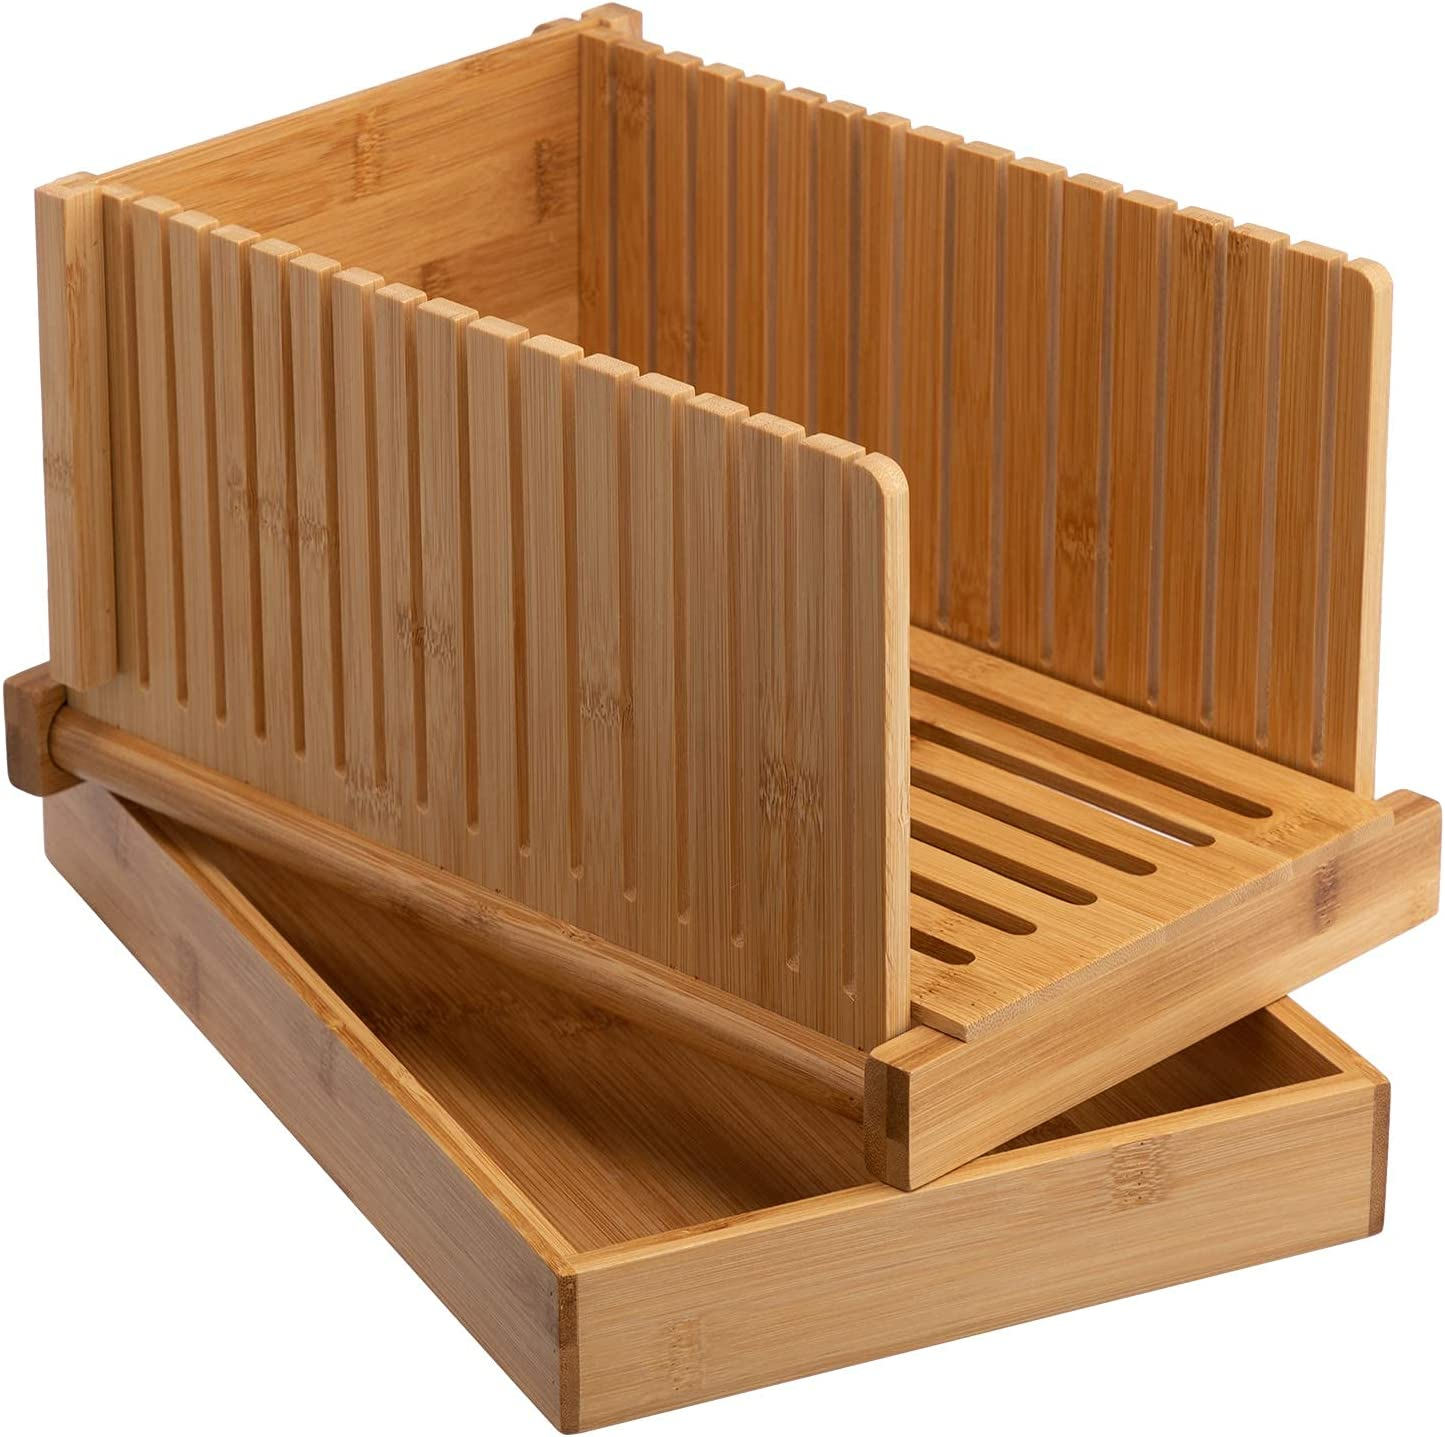 HollyHOME Bamboo Bread Slicer for Homemade Bread Loaf with Crumble Holder,Foldable Compact Bread Slicing Stand Suitable For Bread, Cakes And Bagels– Thin or Thick Slices, Natural